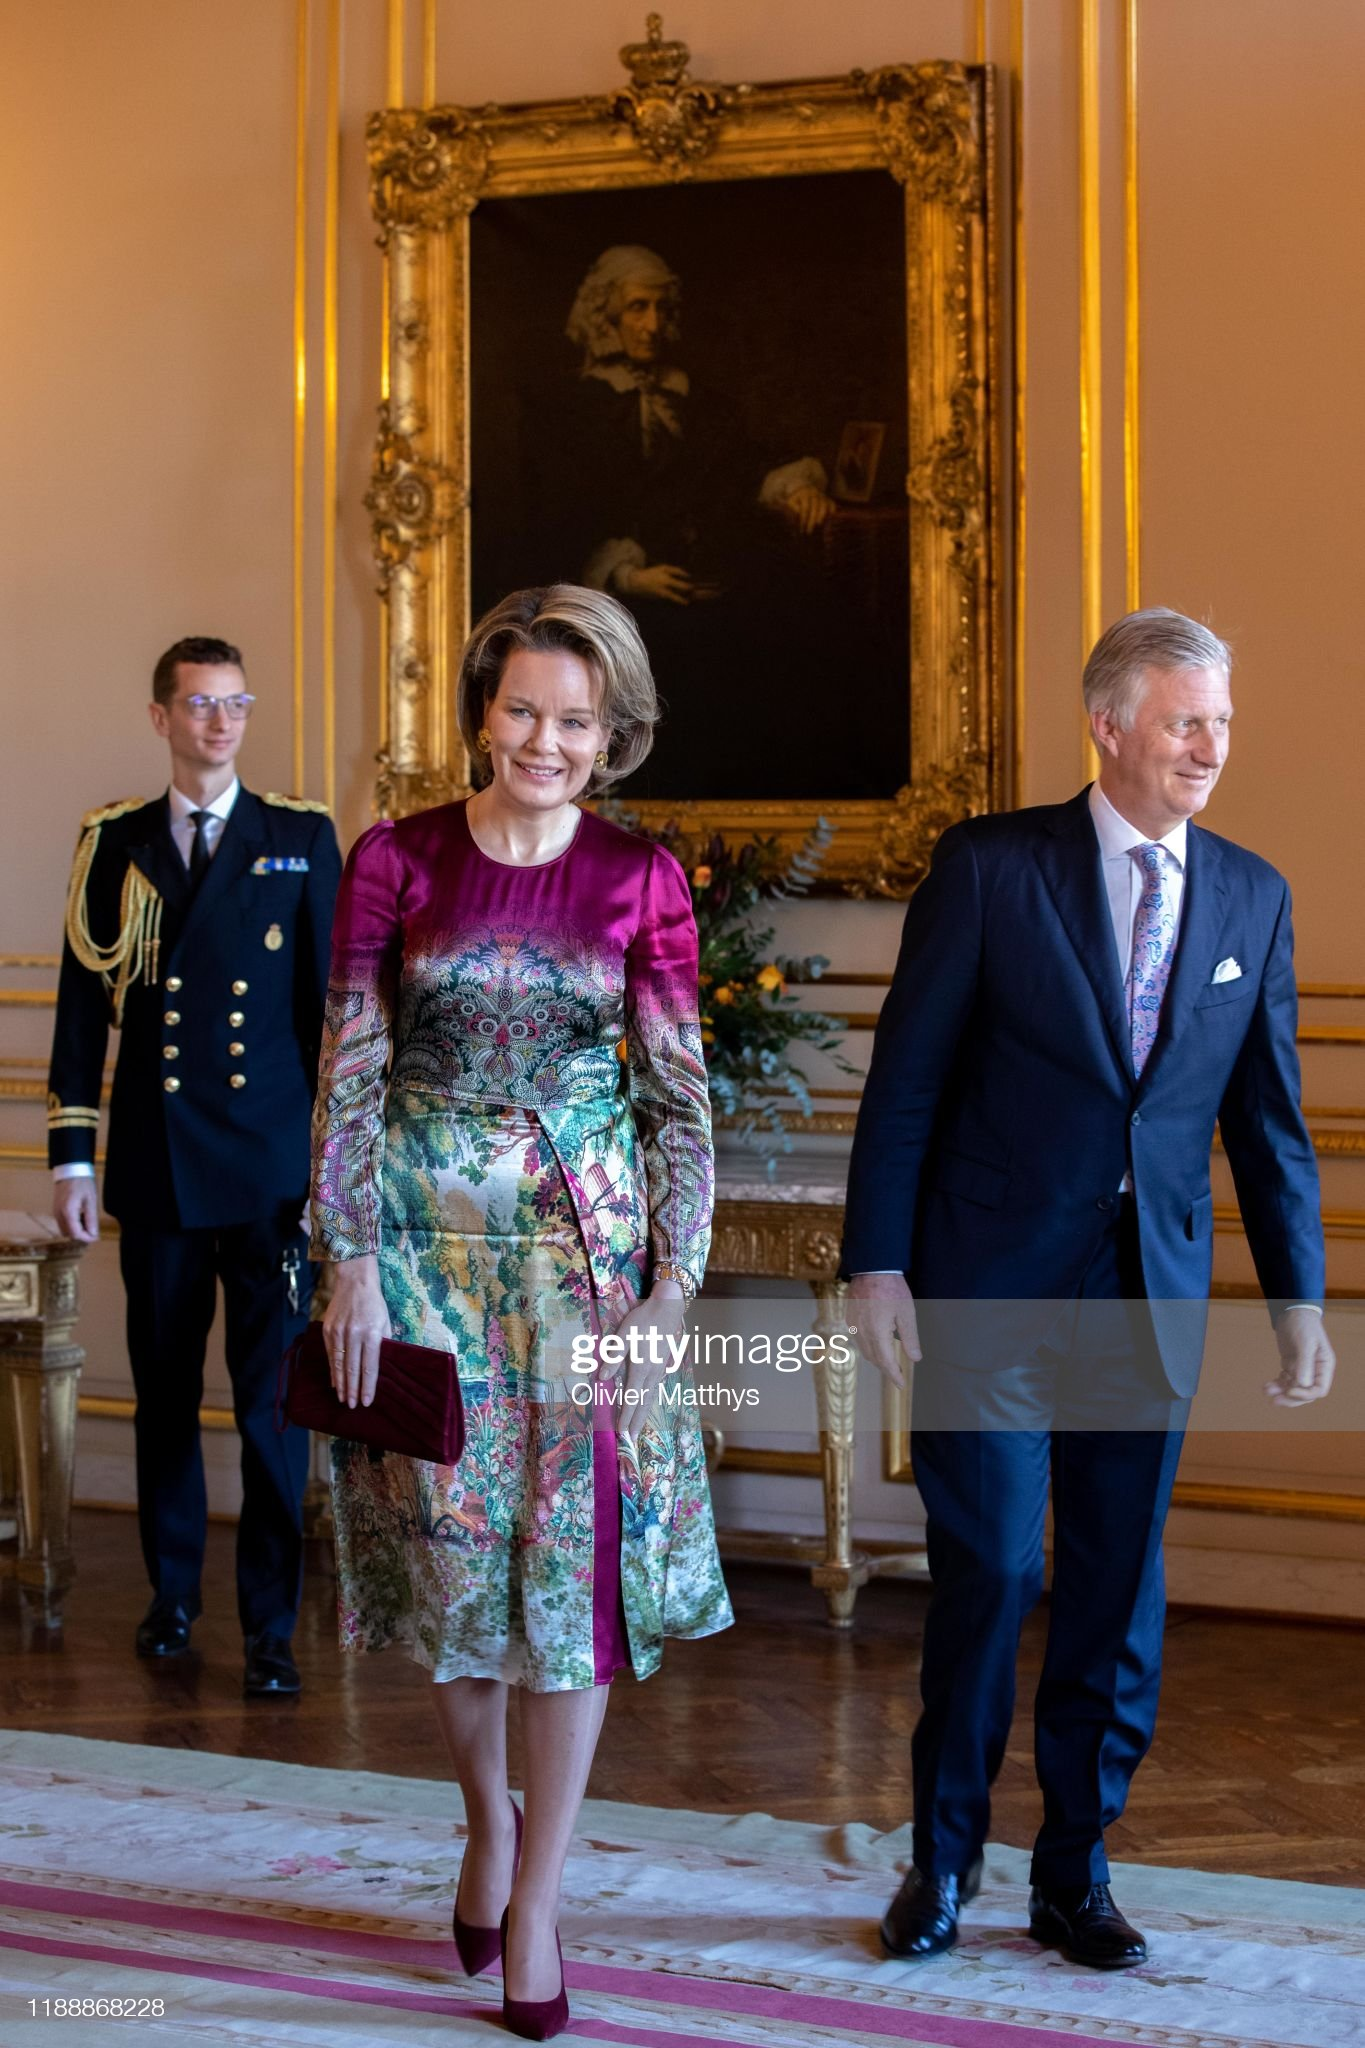 CASA REAL BELGA - Página 85 King-philippe-of-belgium-and-queen-mathilde-arrive-in-the-royal-to-picture-id1188868228?s=2048x2048